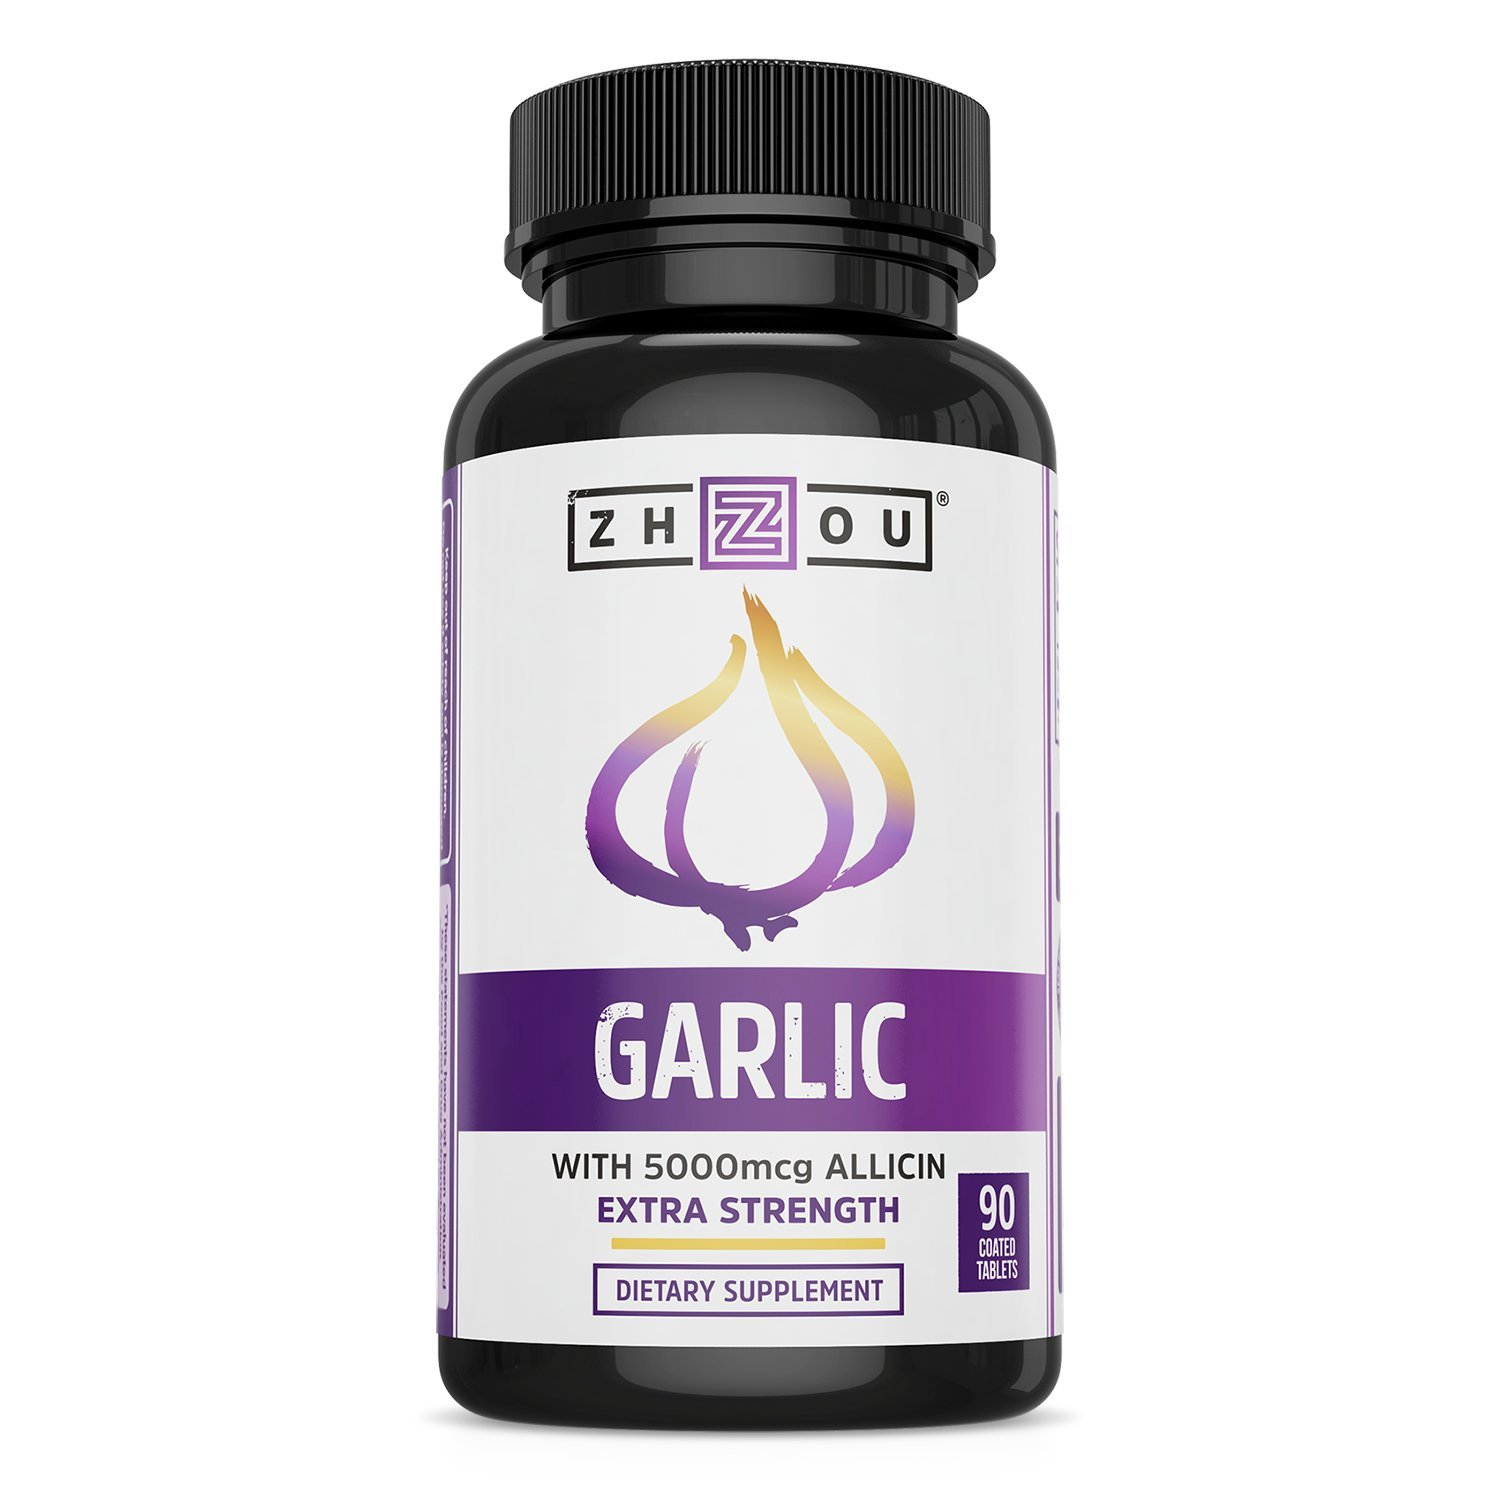 Extra Strength Garlic with Allicin - Powerful Immune System Support Formula - Enteric Coated Tablets for Easy Swallowing - Feel the Allicin Difference - 3 Month Supply by Zhou Nutrition